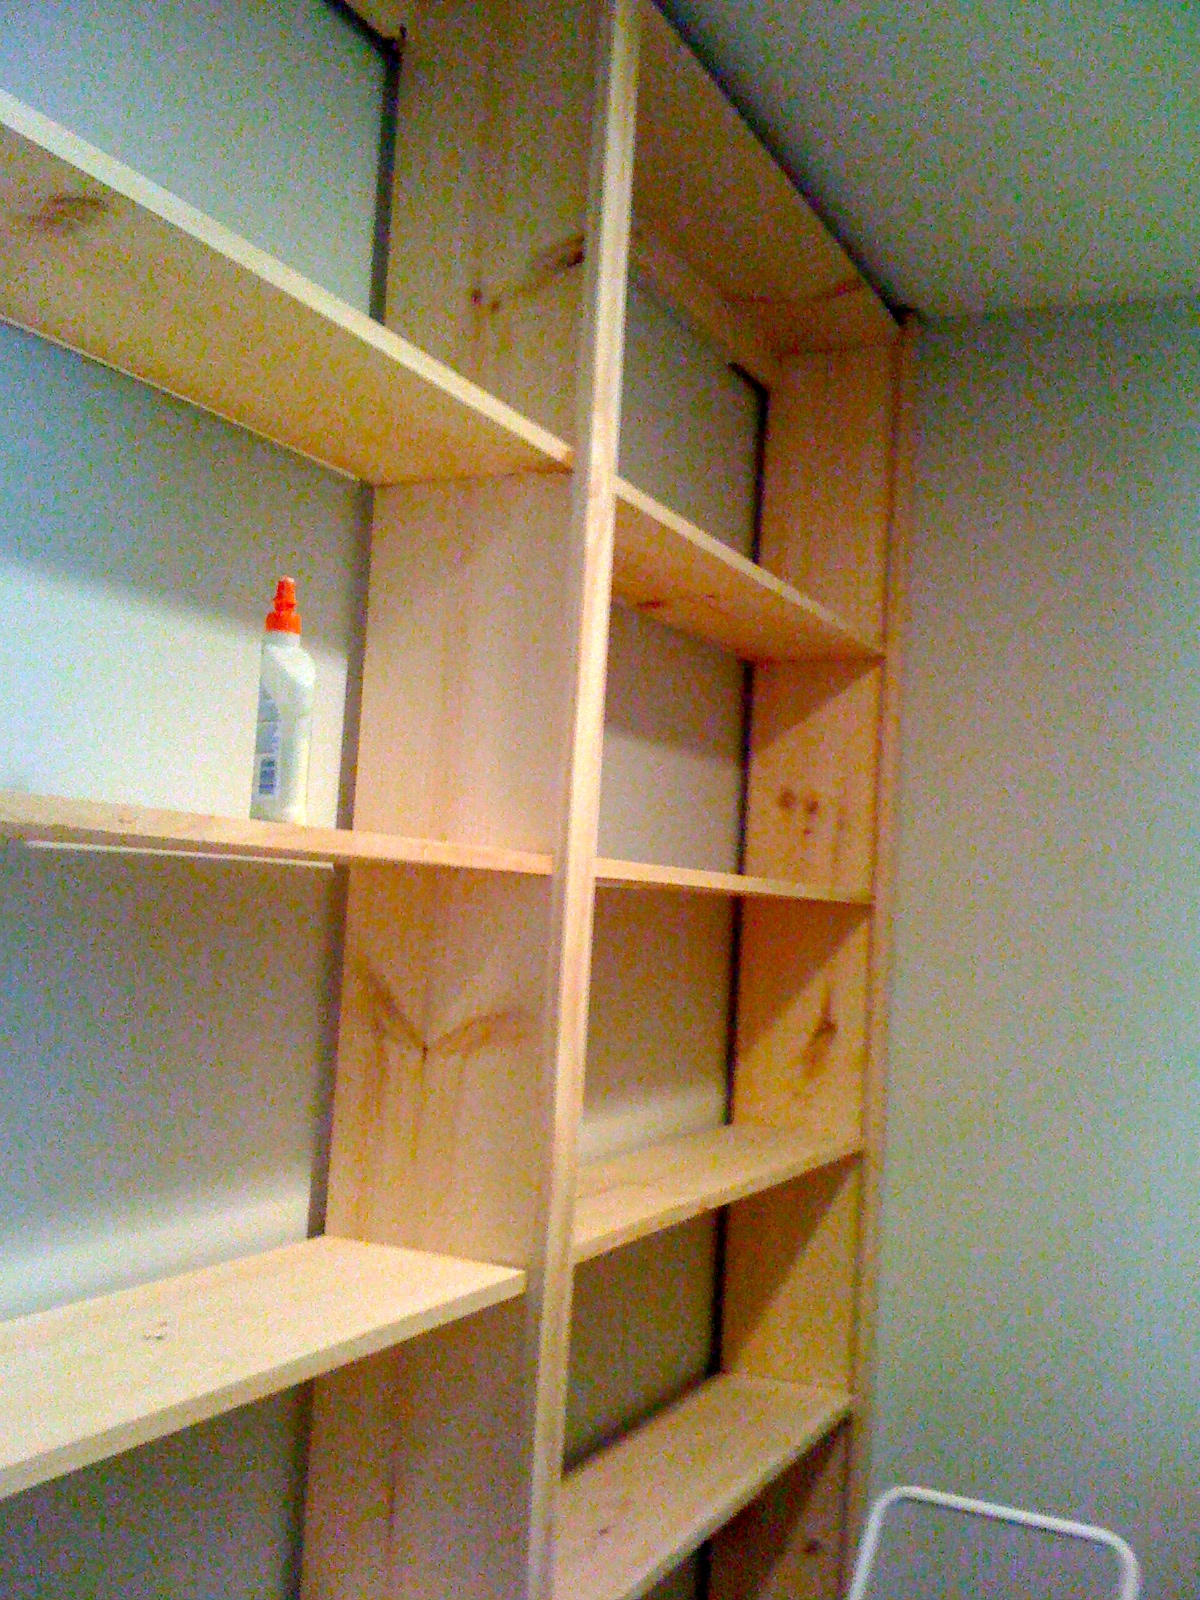 How To Build Wall To Wall Bookshelves Idi Design For Build Bookcase Wall (View 11 of 15)